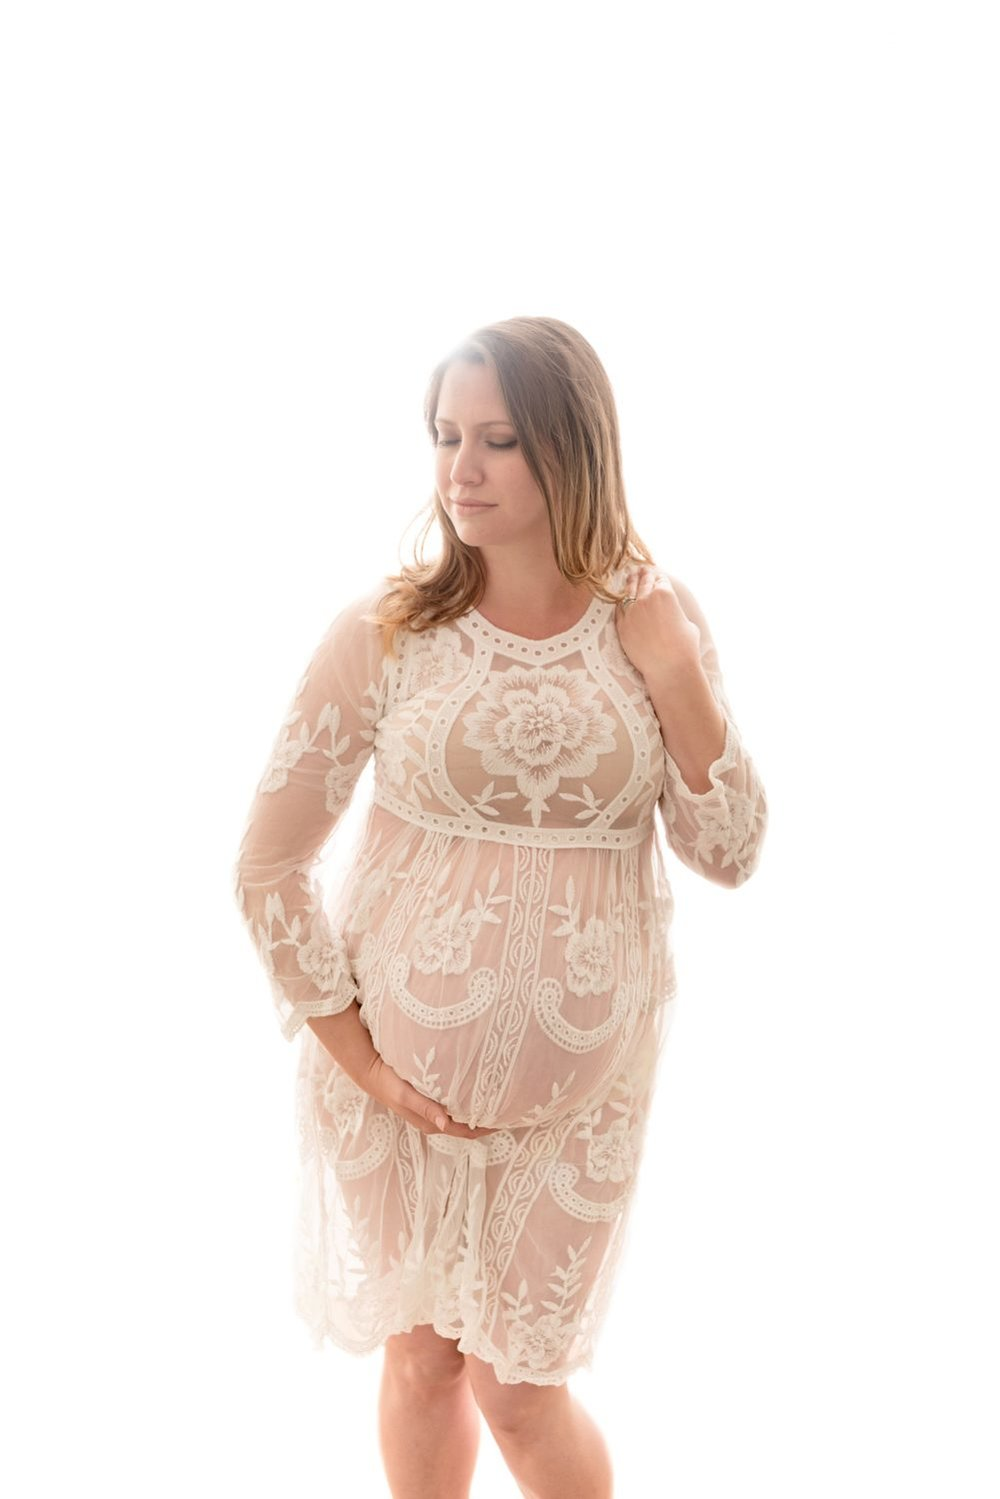 studio backlighting lace white dress pregnant belly